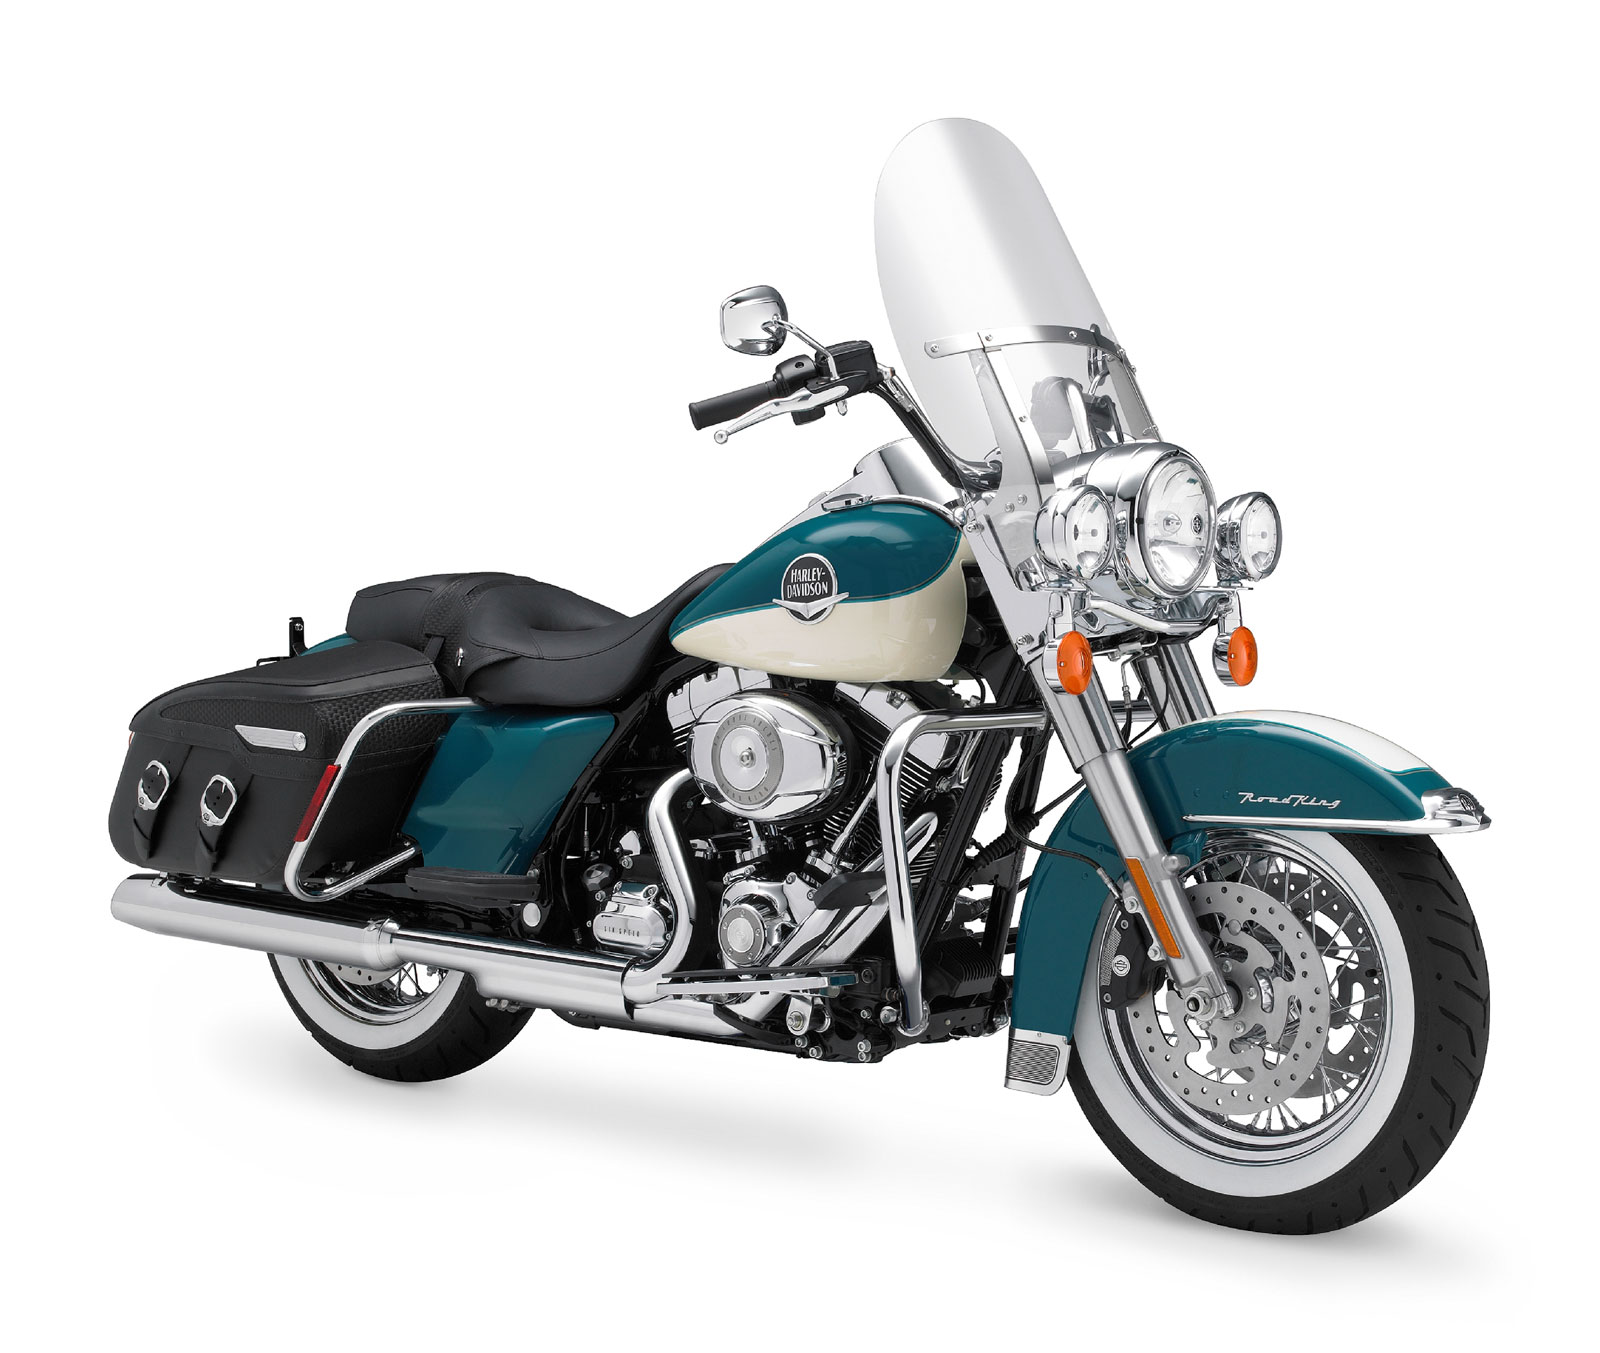 2012 Harley-Davidson FLHRC Road King Classic | Top Speed